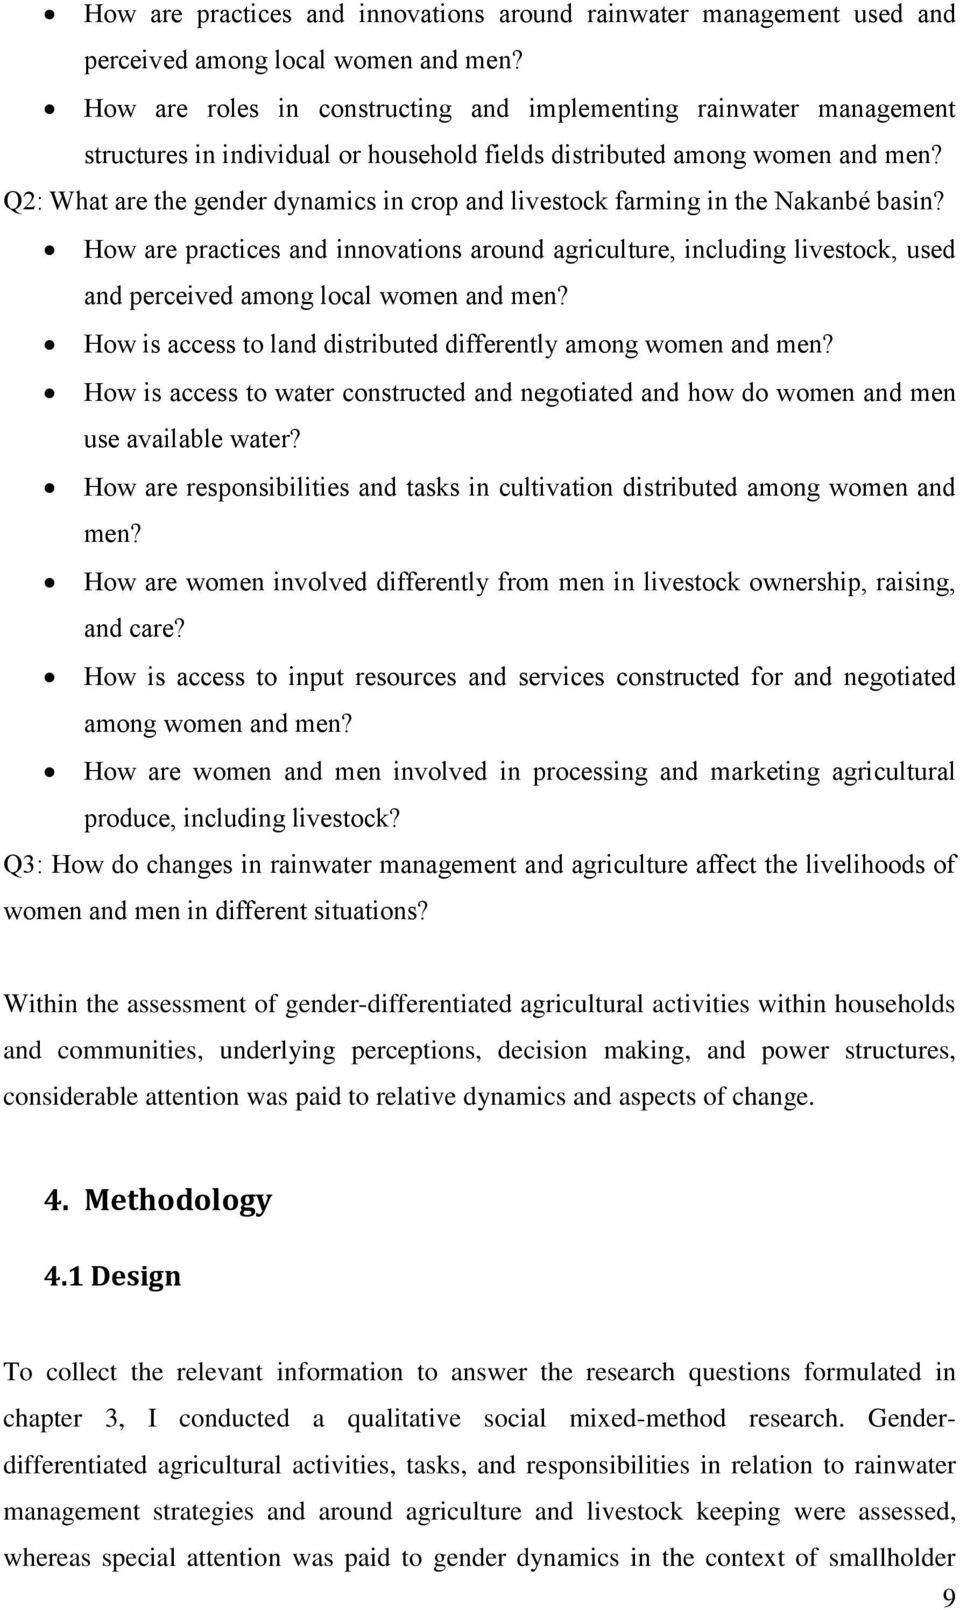 Q2: What are the gender dynamics in crop and livestock farming in the Nakanbé basin?